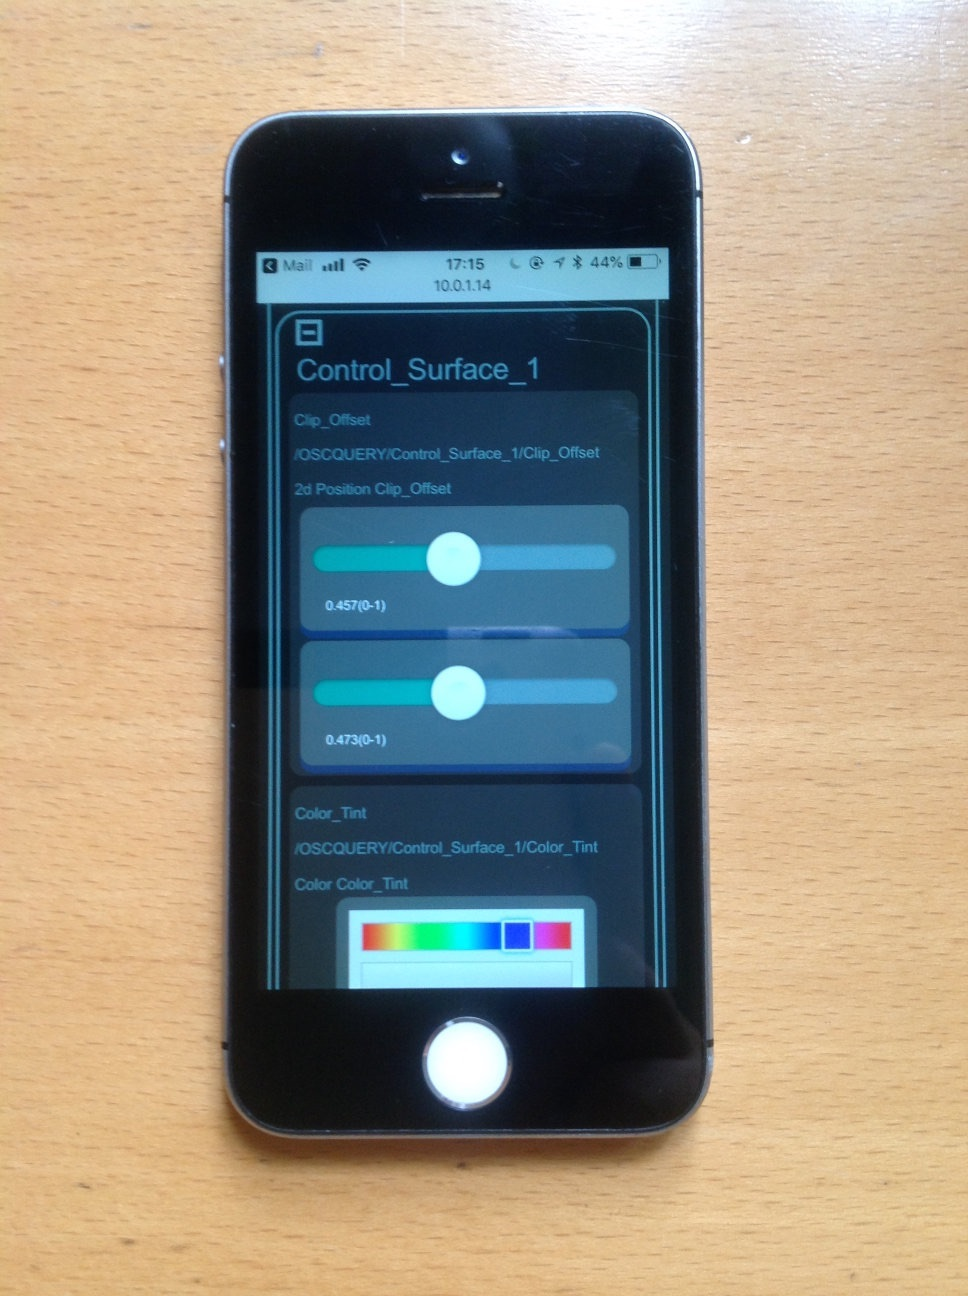 The corresponding interface viewed in Safari on an iPhone.